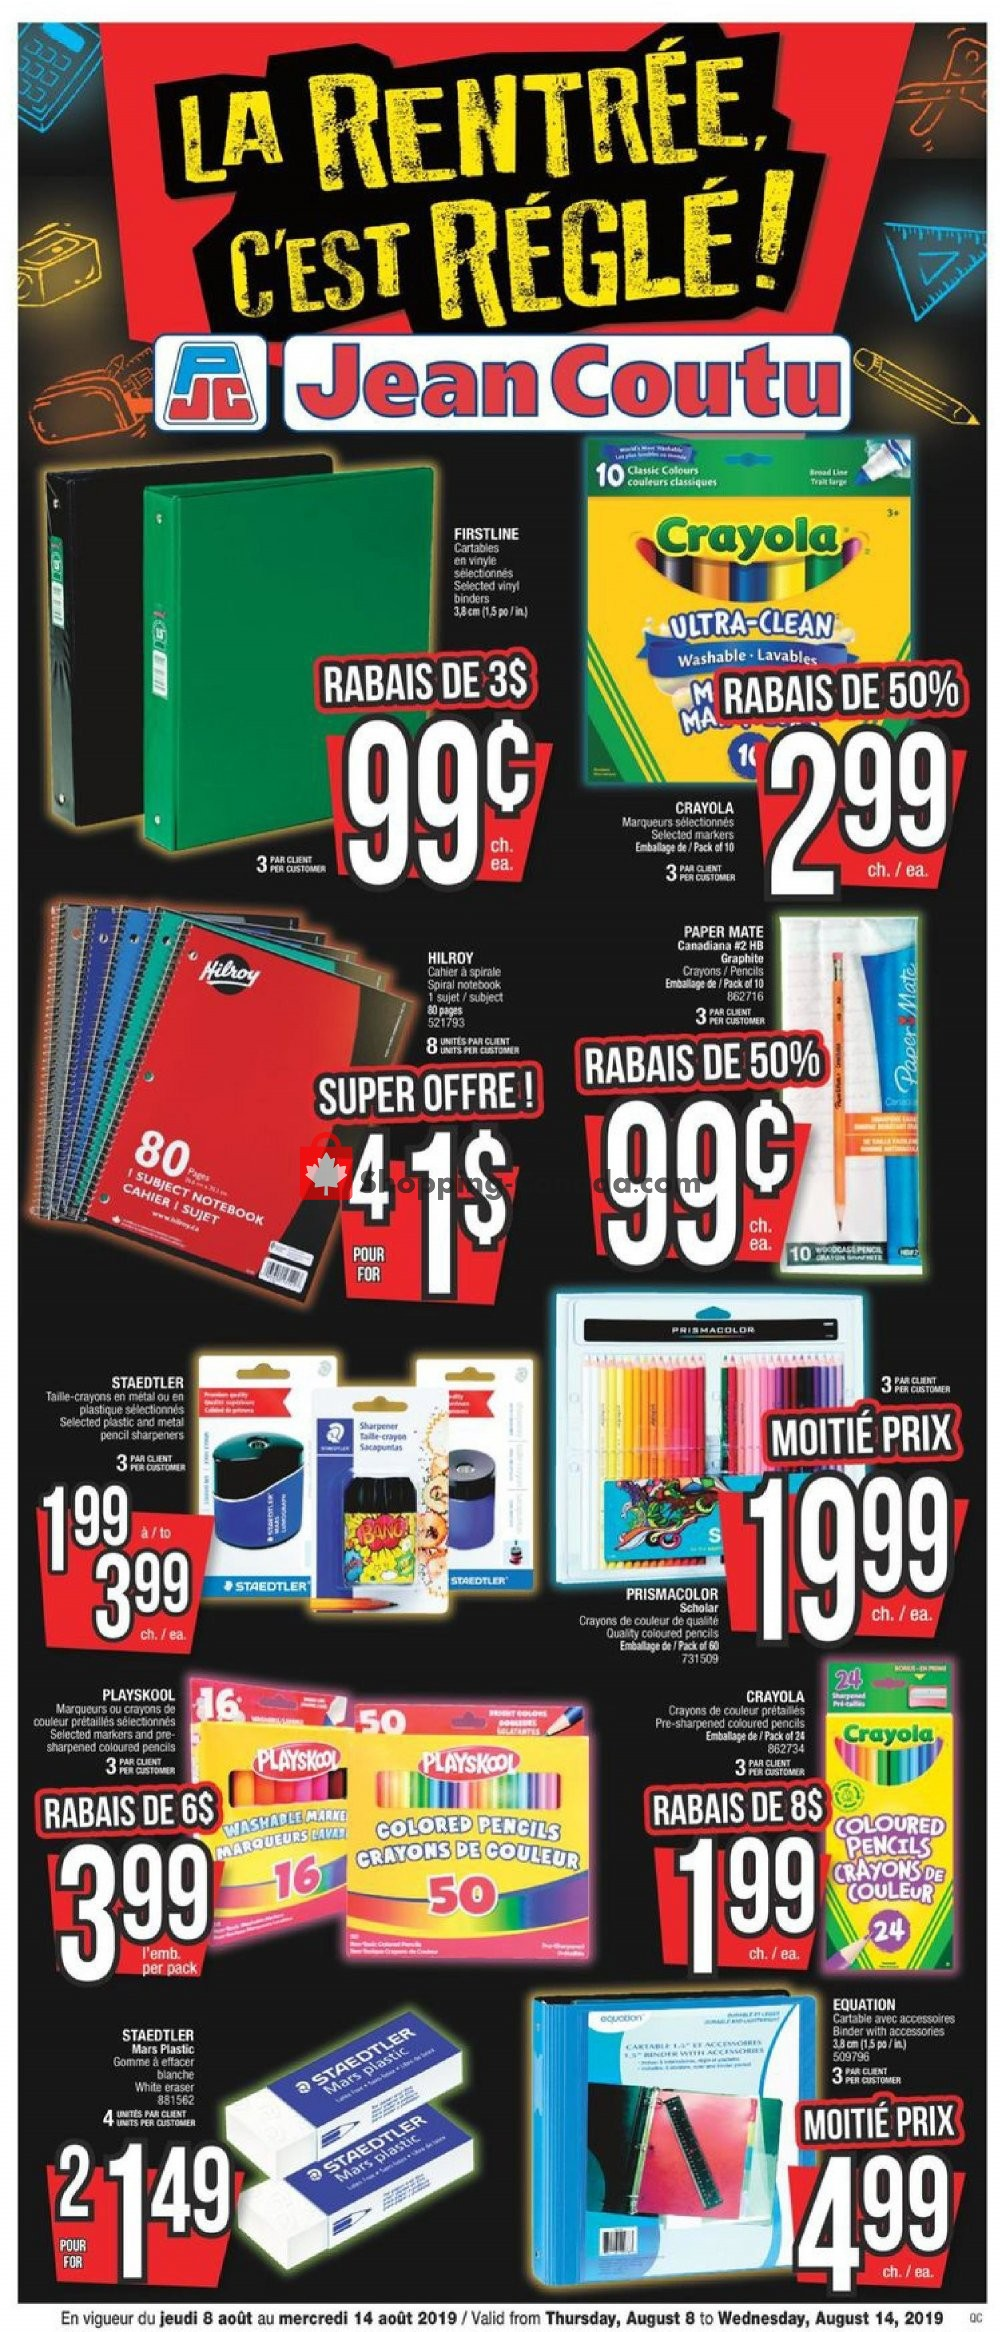 Flyer Jean Coutu Pharmacy Canada - from Thursday August 8, 2019 to Wednesday August 14, 2019